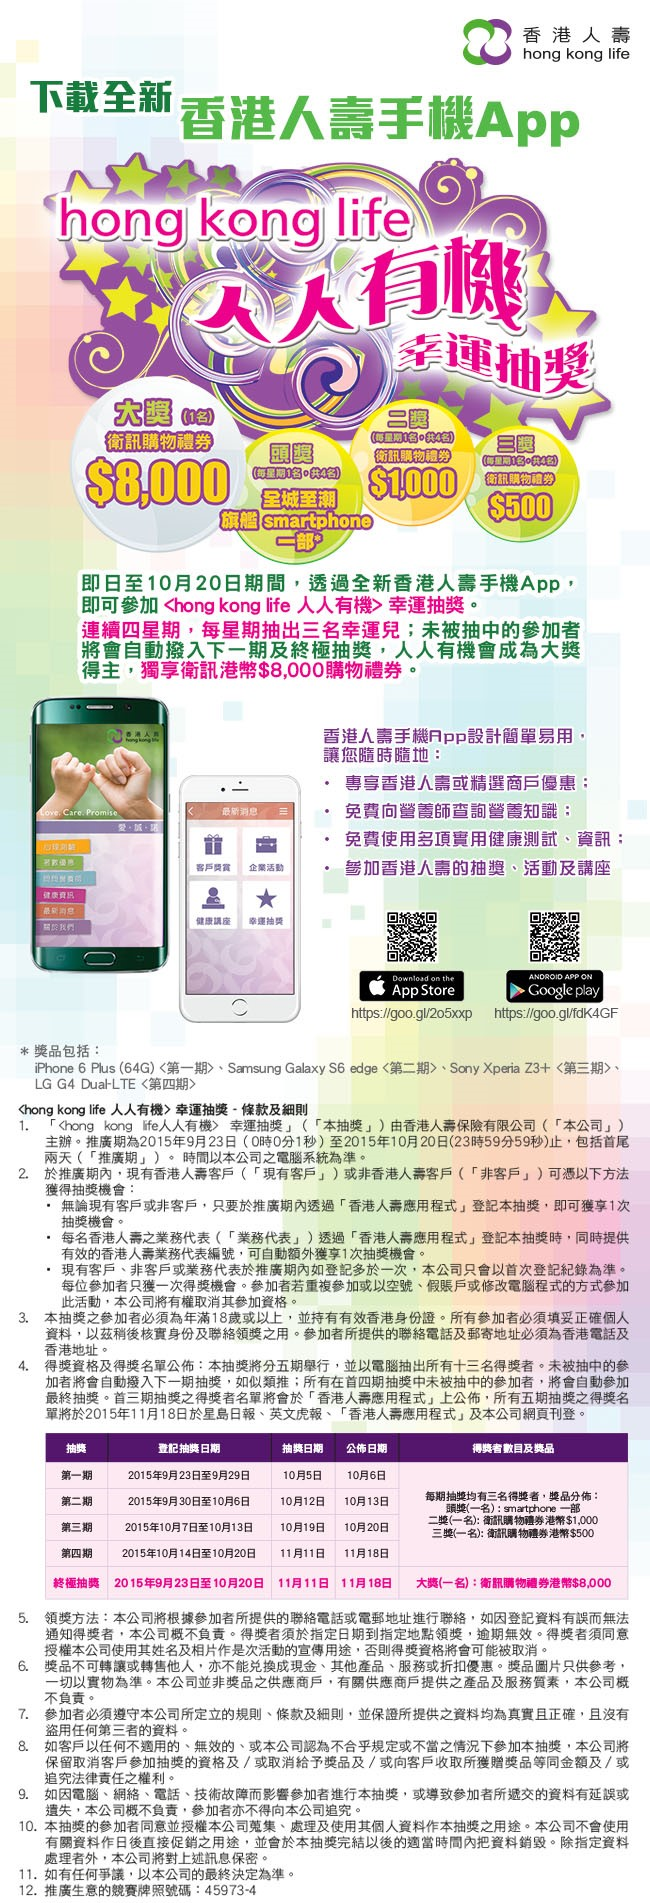 Organizes Hong Kong Life Mobile App Lucky Draw | About Us | Hong